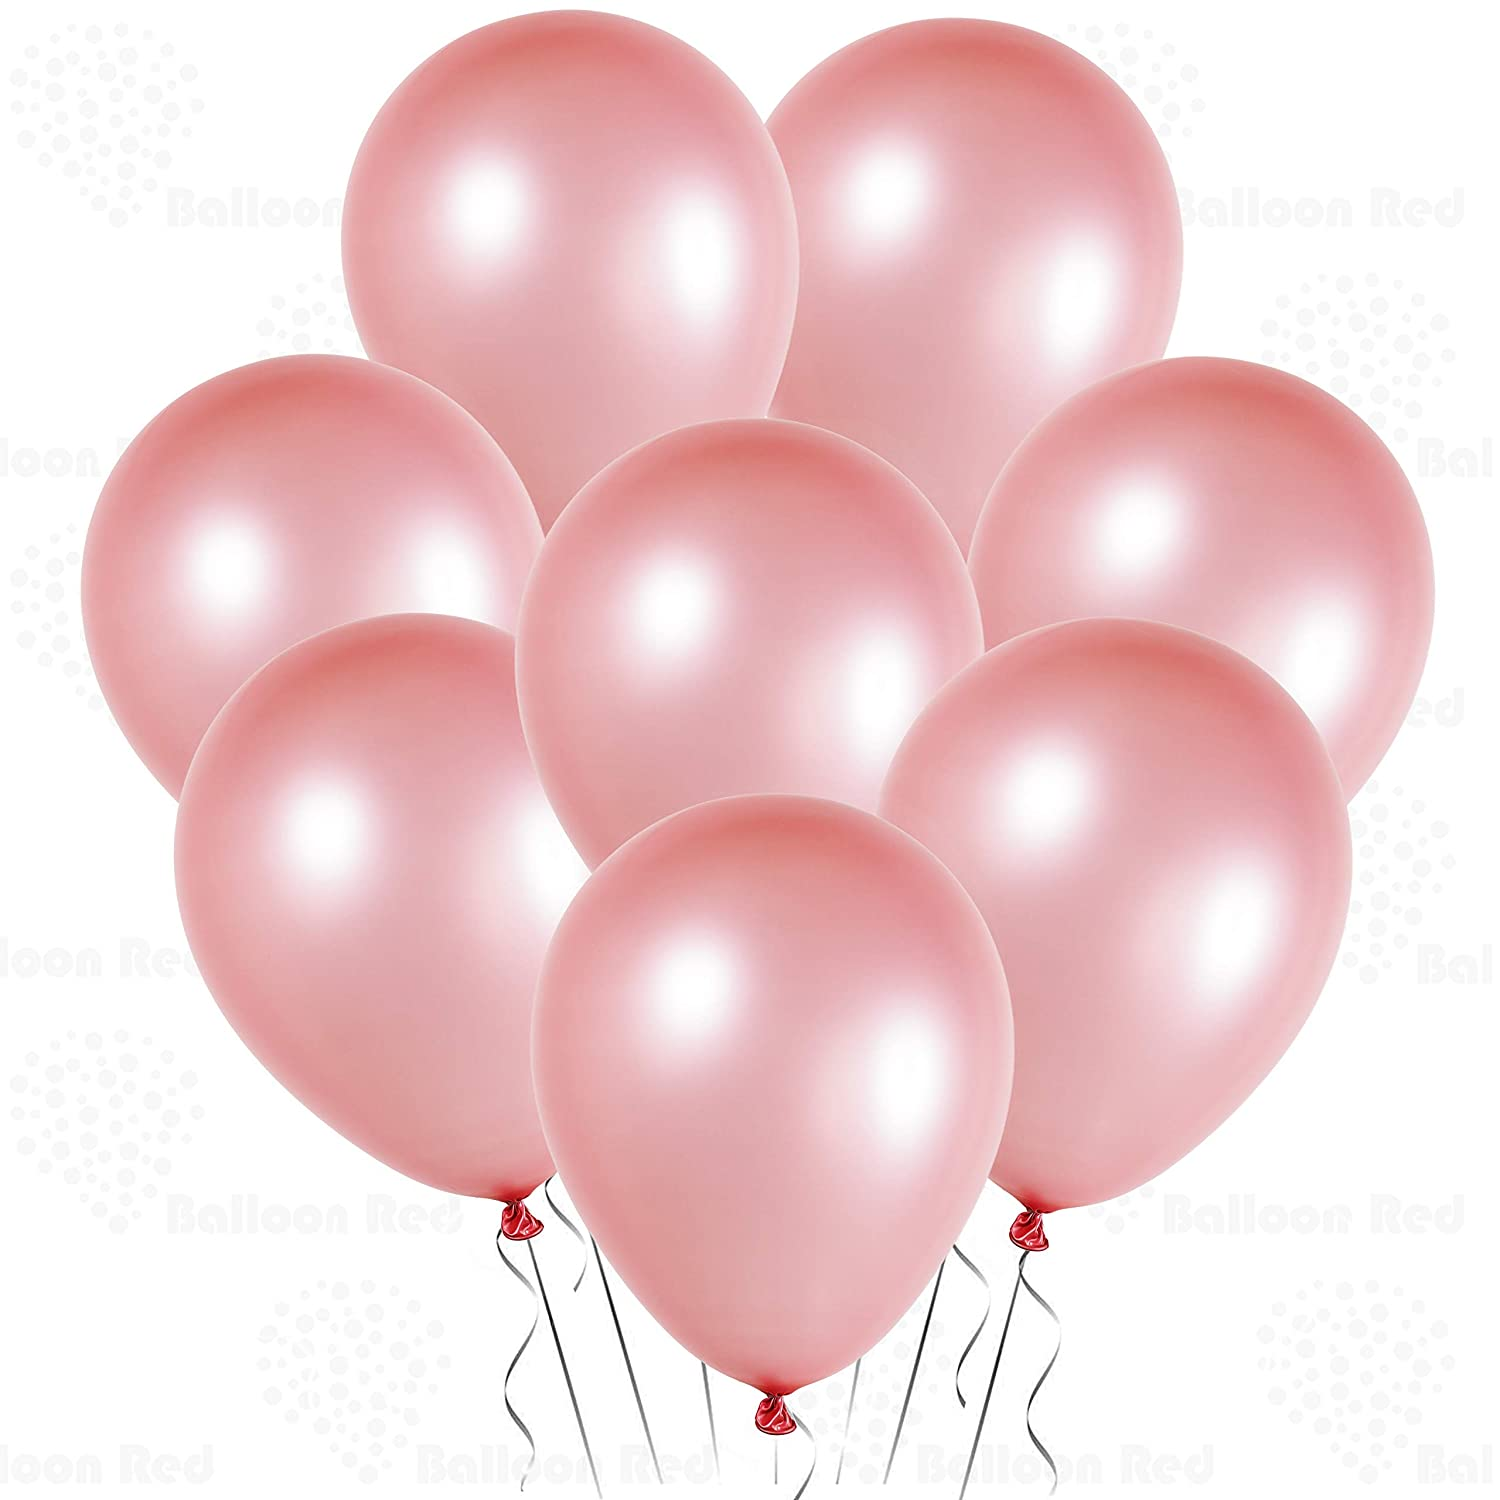 Amazon.com: 12 Inch Pearlized Latex Balloons (Premium Helium Quality), Pack  of 72, Pearl Rose Pink, for Bridal Shower Wedding Birthday Party  Decorations ...